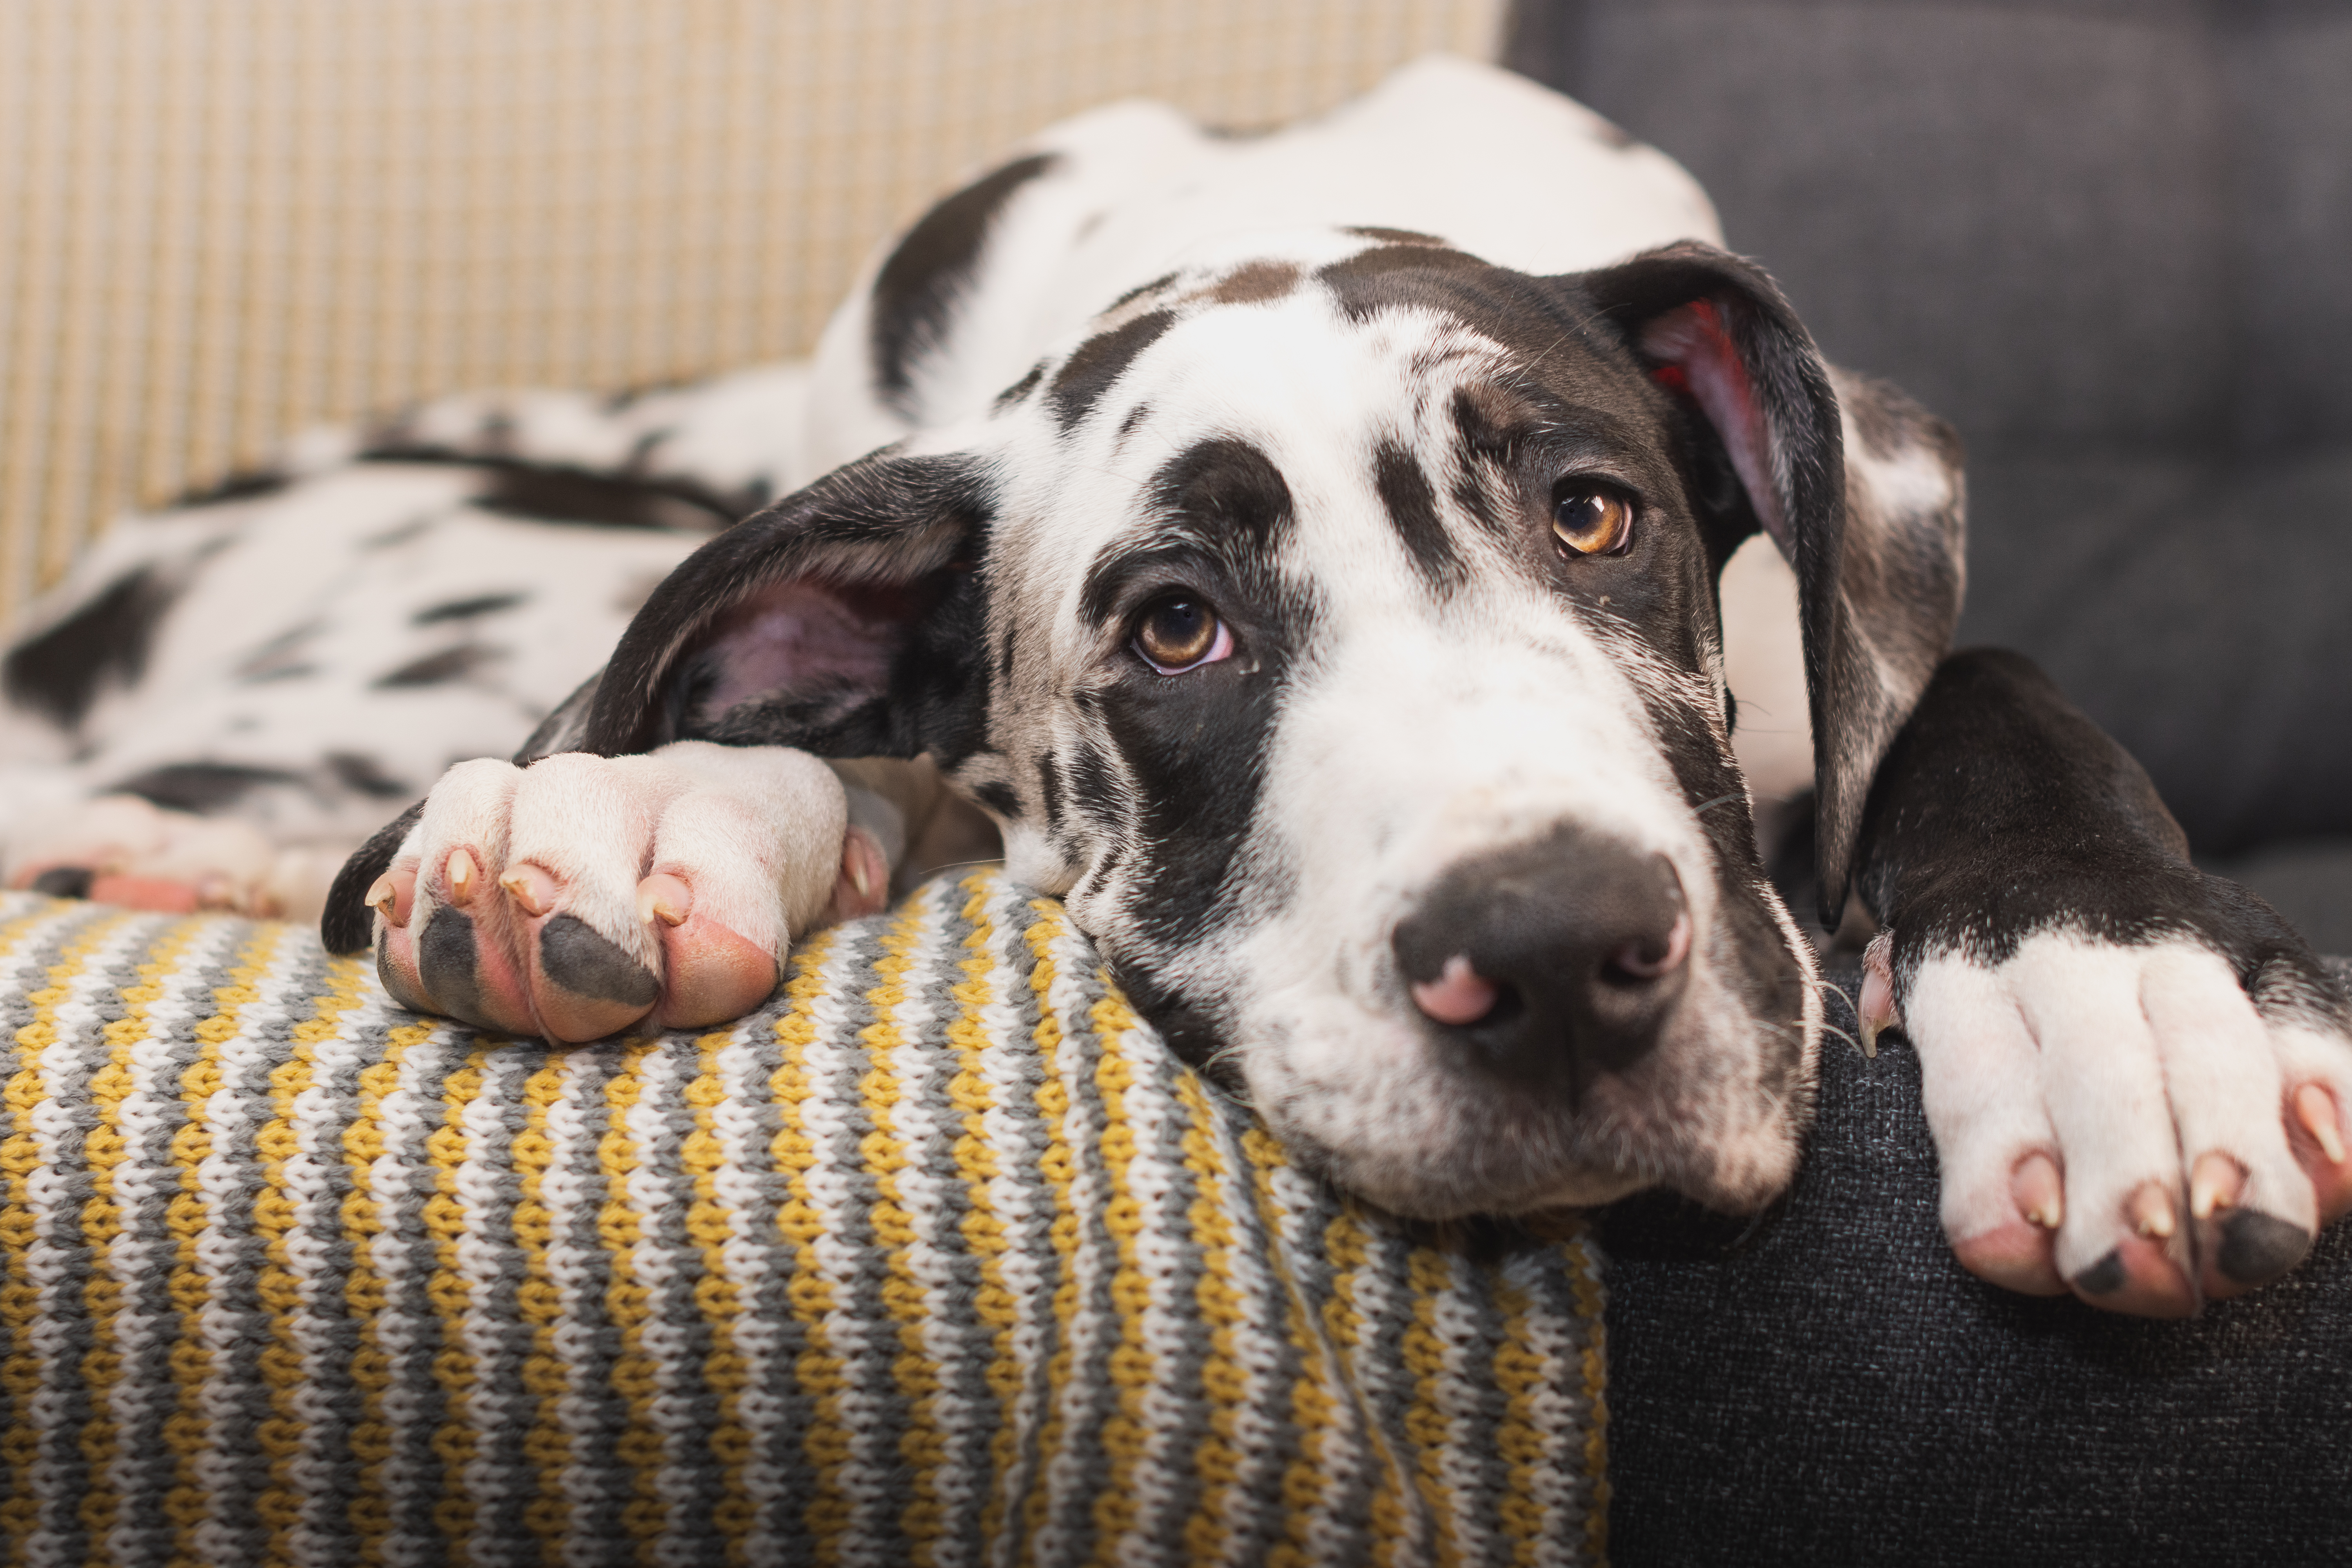 5 easy steps to take to pet-proof your home 1